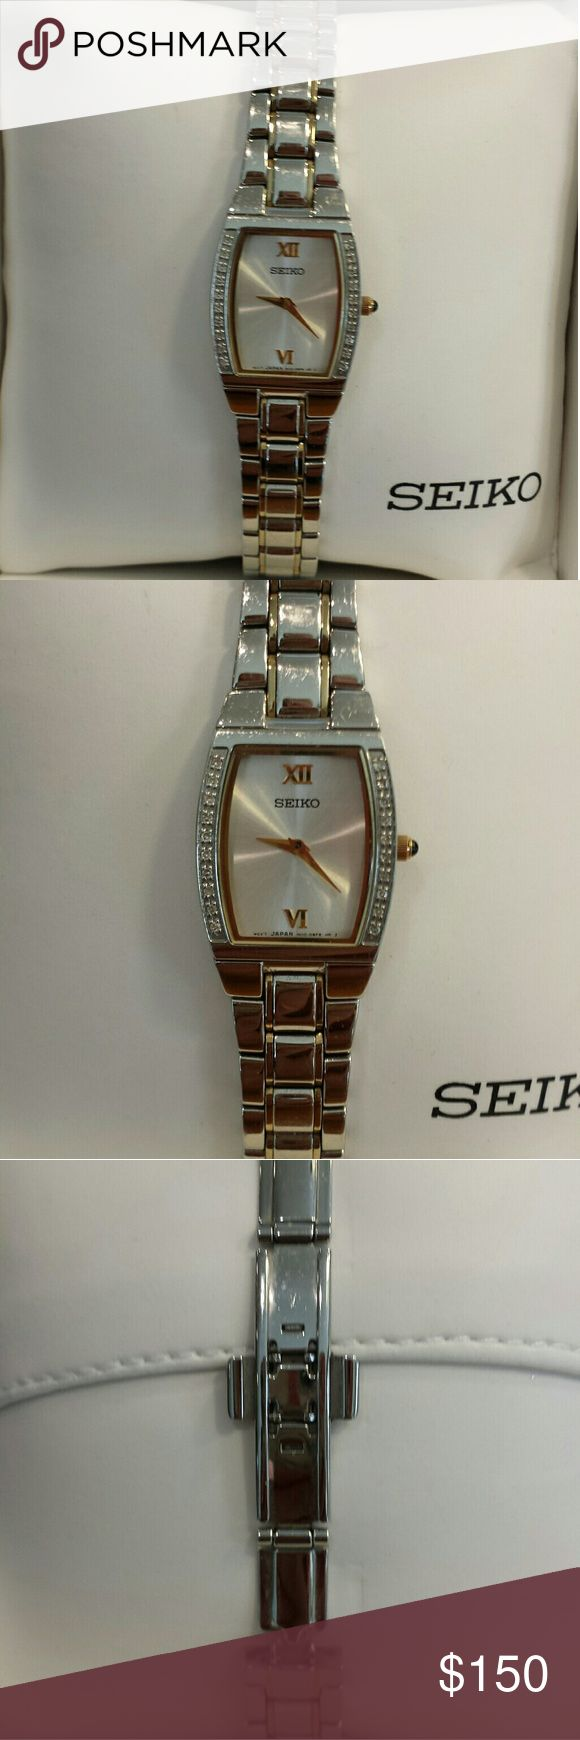 Seiko Diamond Dress Watch Two-tone Stainless Steel Dress Watch with a silvertone dial and diamonds along the face.  Model #SUJE81. Analog display and quartz movement. Band is stainless steel. Water-resistant. Diamonds! In original box. Barely worn. Seiko Accessories Watches